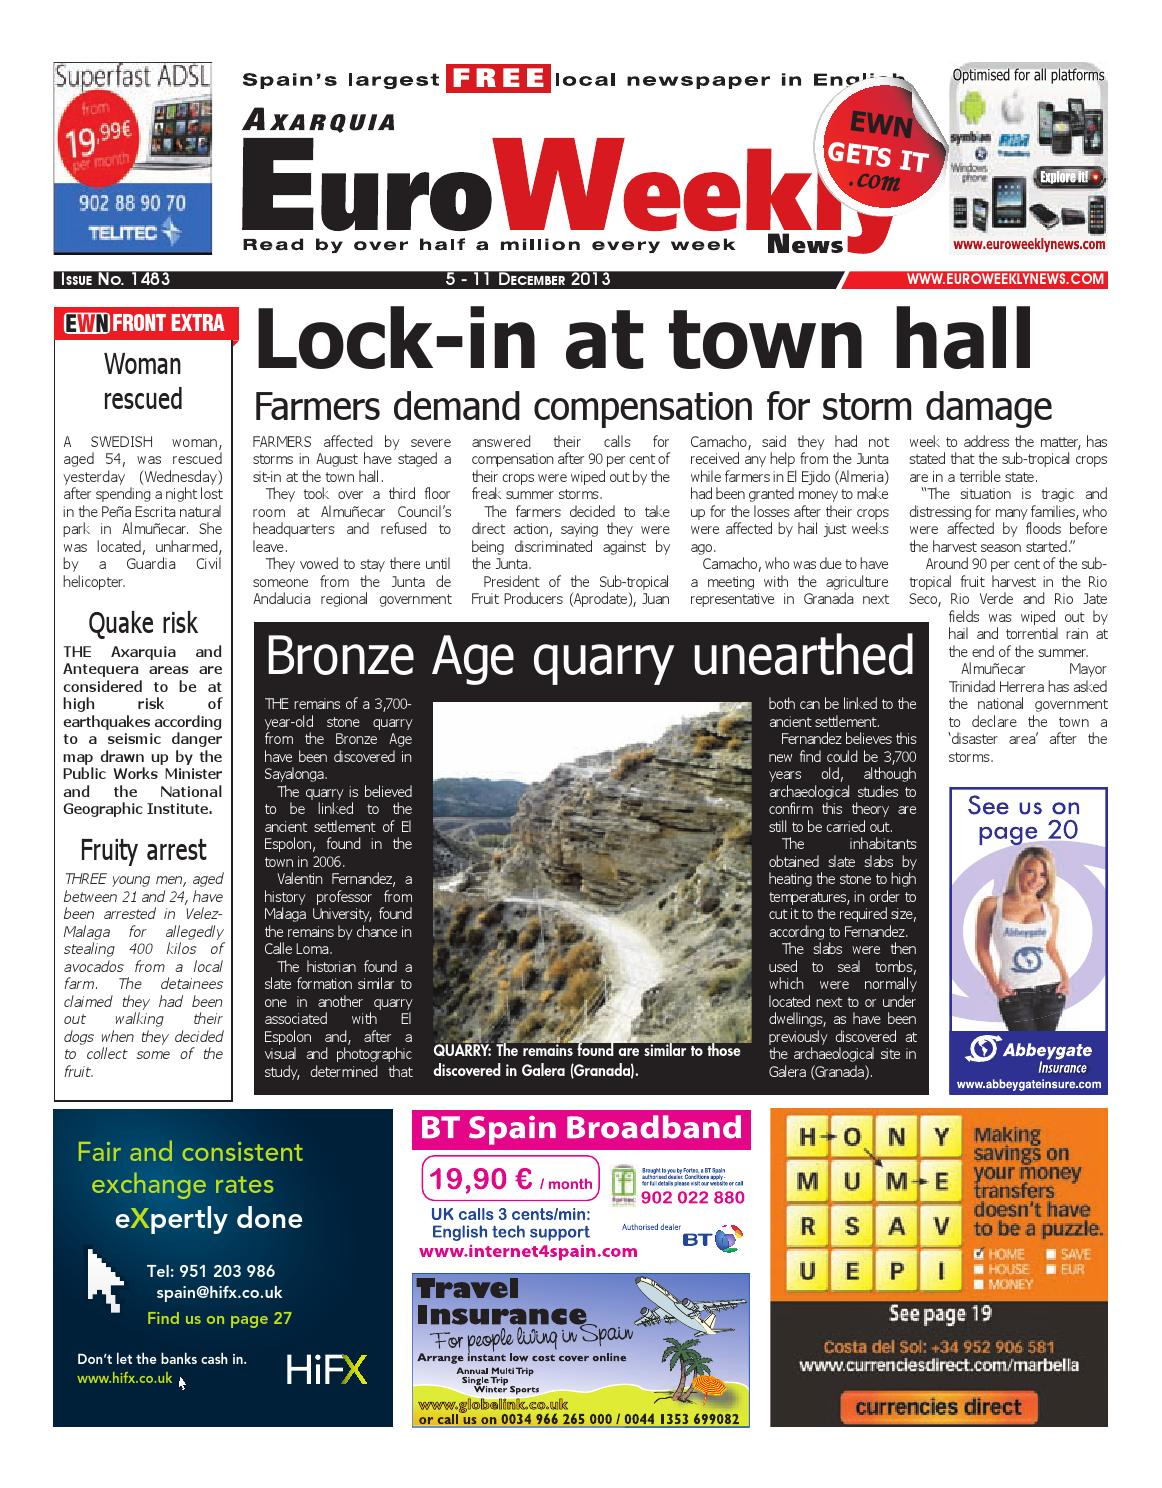 Euro Weekly News Axarquia 5 11 December 2013 Issue 1483 By Euro Weekly News Media S A Issuu